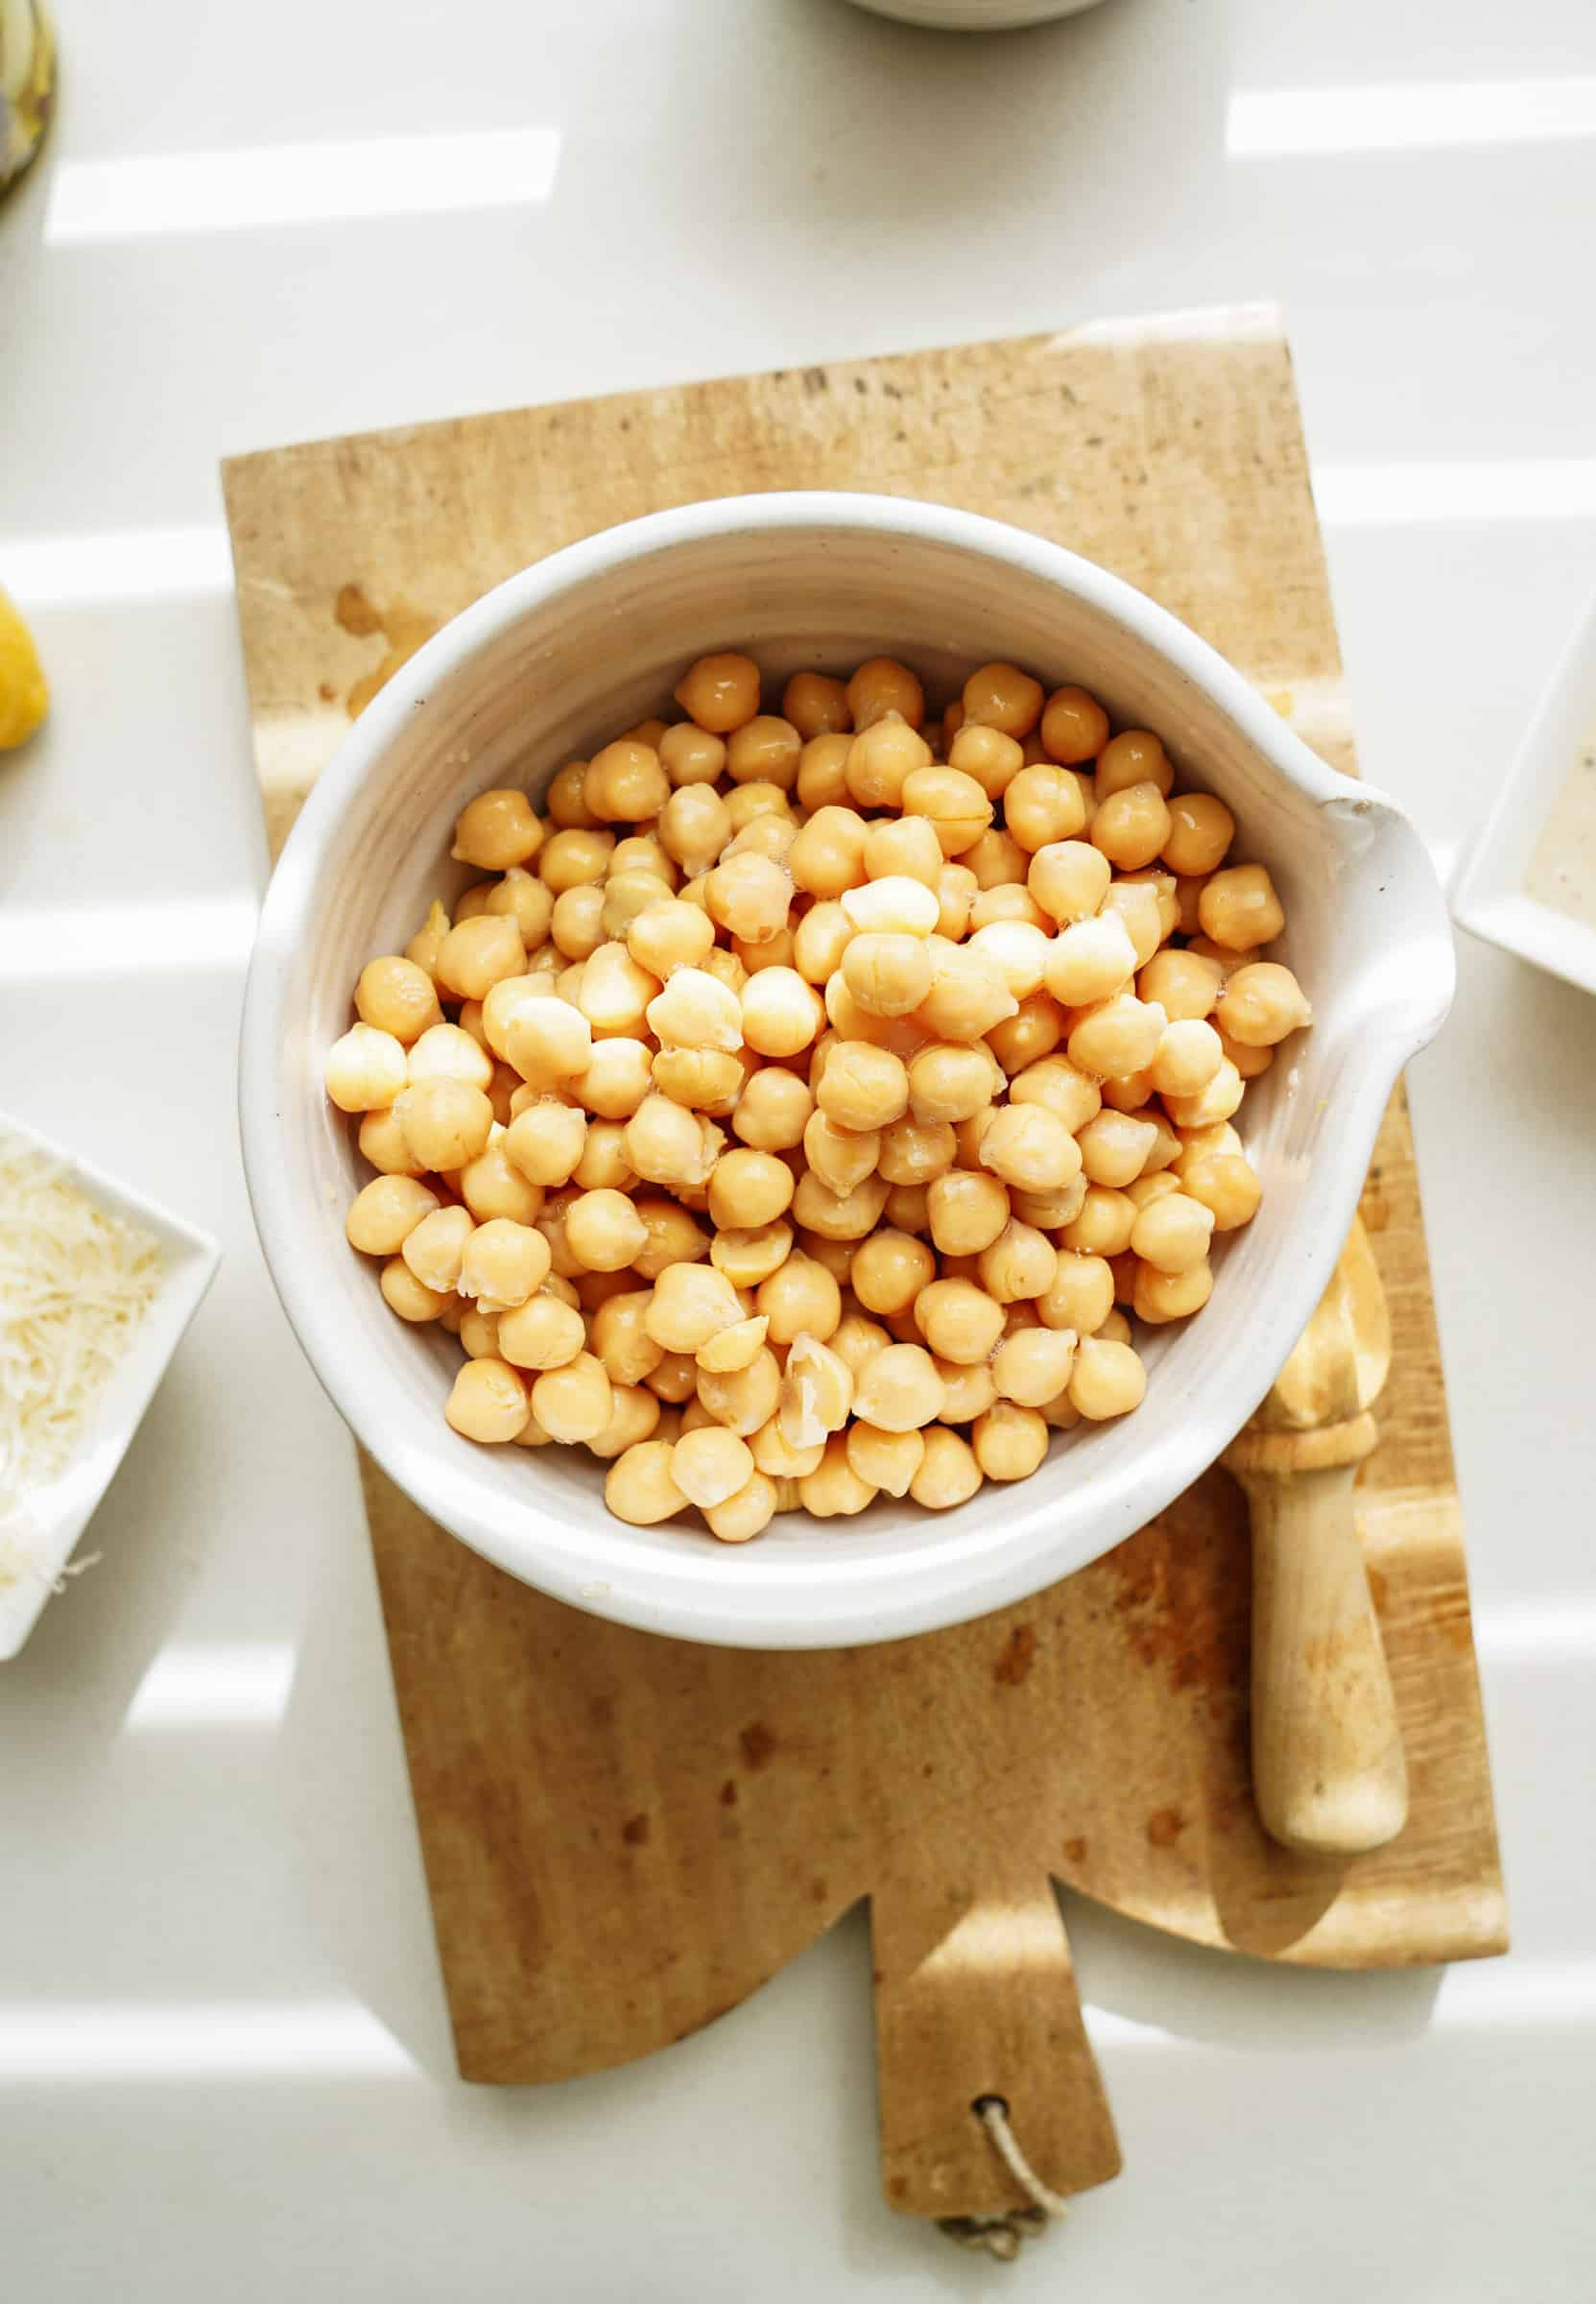 Chickpeas in a bowl for chickpea caesar salad wrap